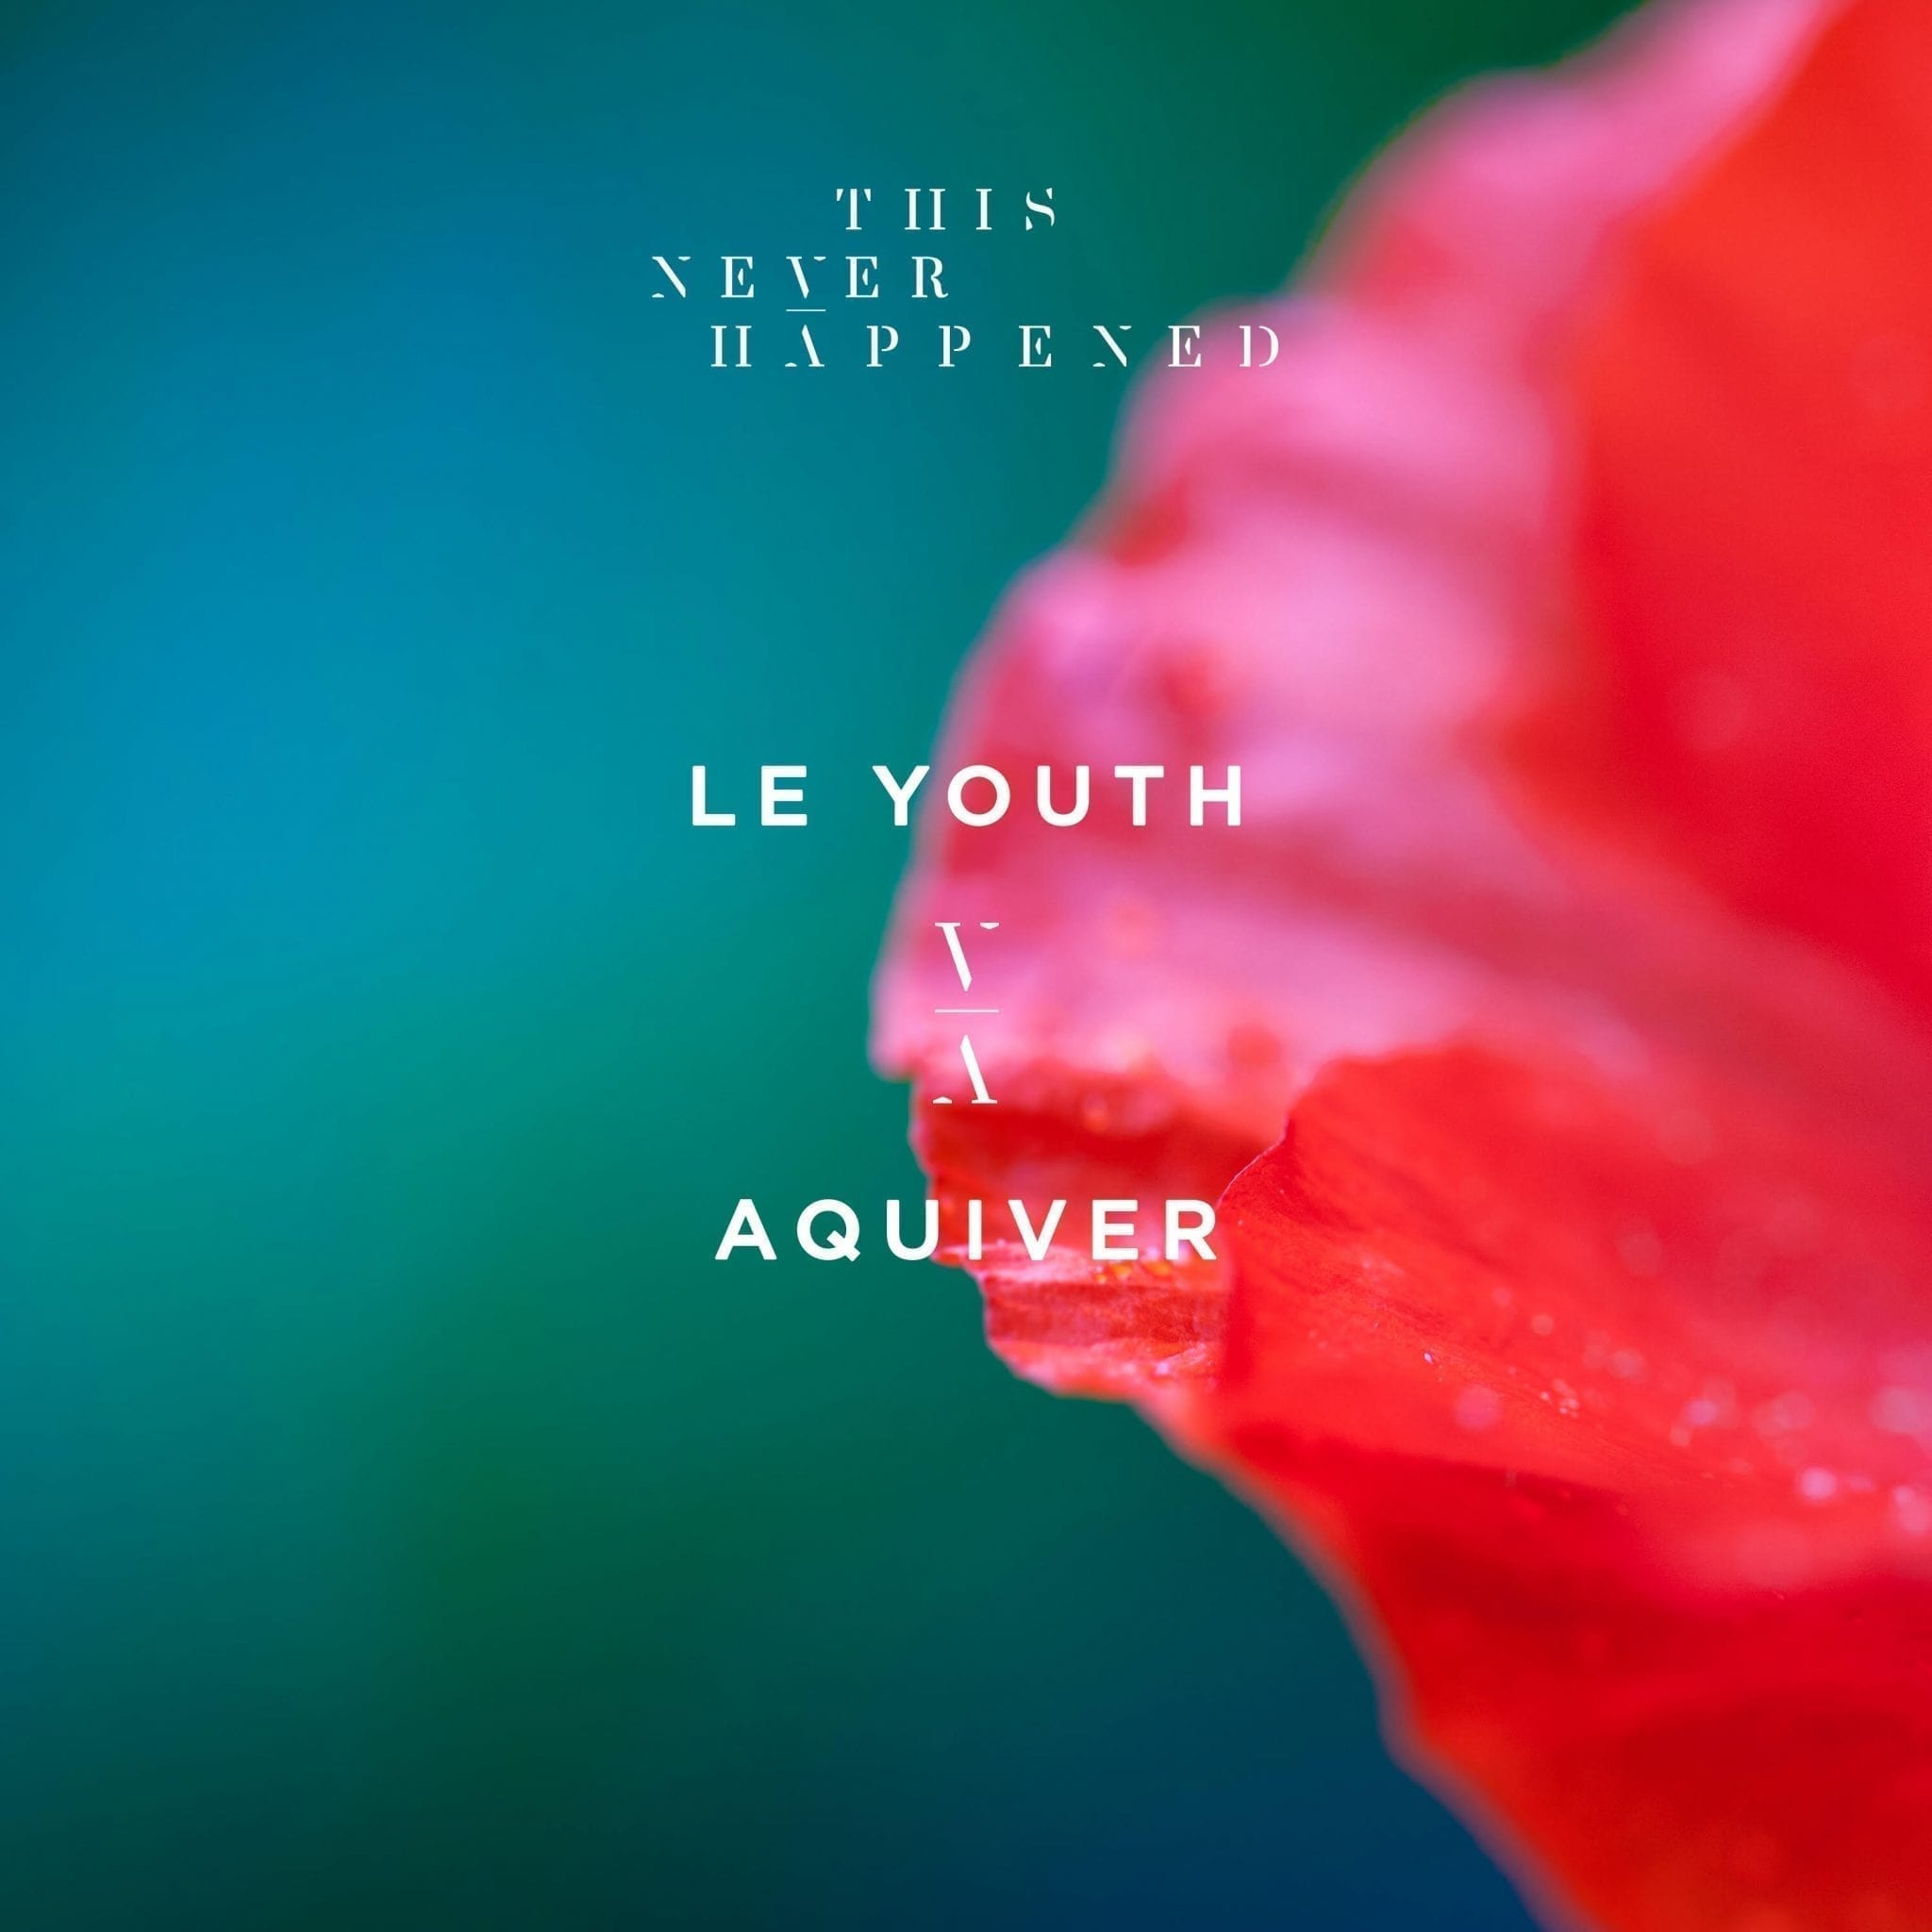 Le Youth unveils his new sound with Aquiver EP out on Lane 8's imprint